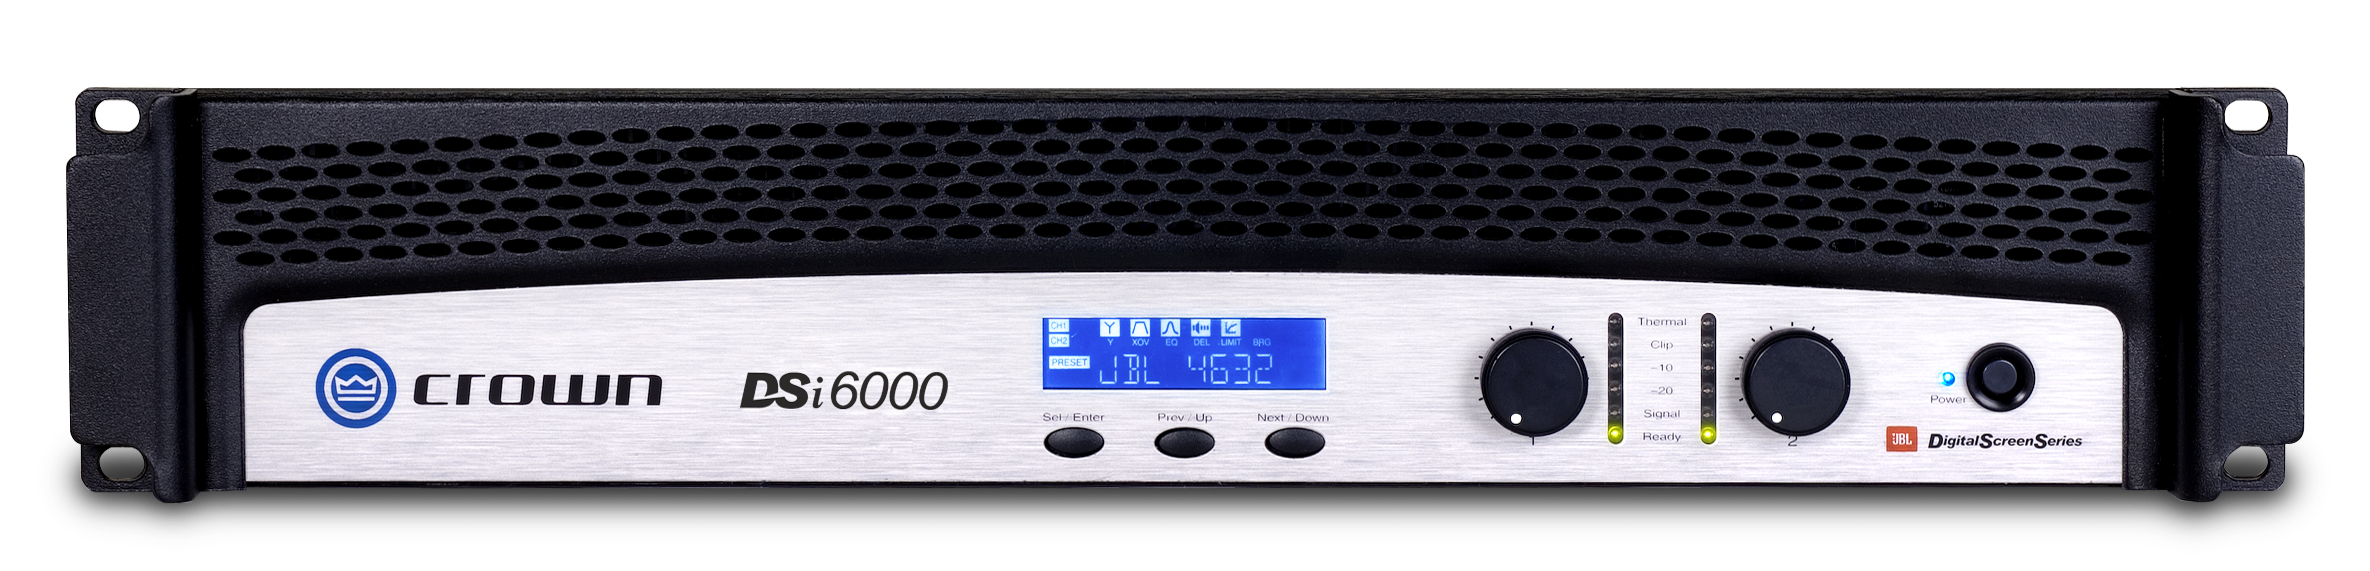 Dsi 6000 Crown Audio Professional Power Amplifiers 15 Volts Output Of Each Speaker 10 Watt With 4 Ohm Impedance